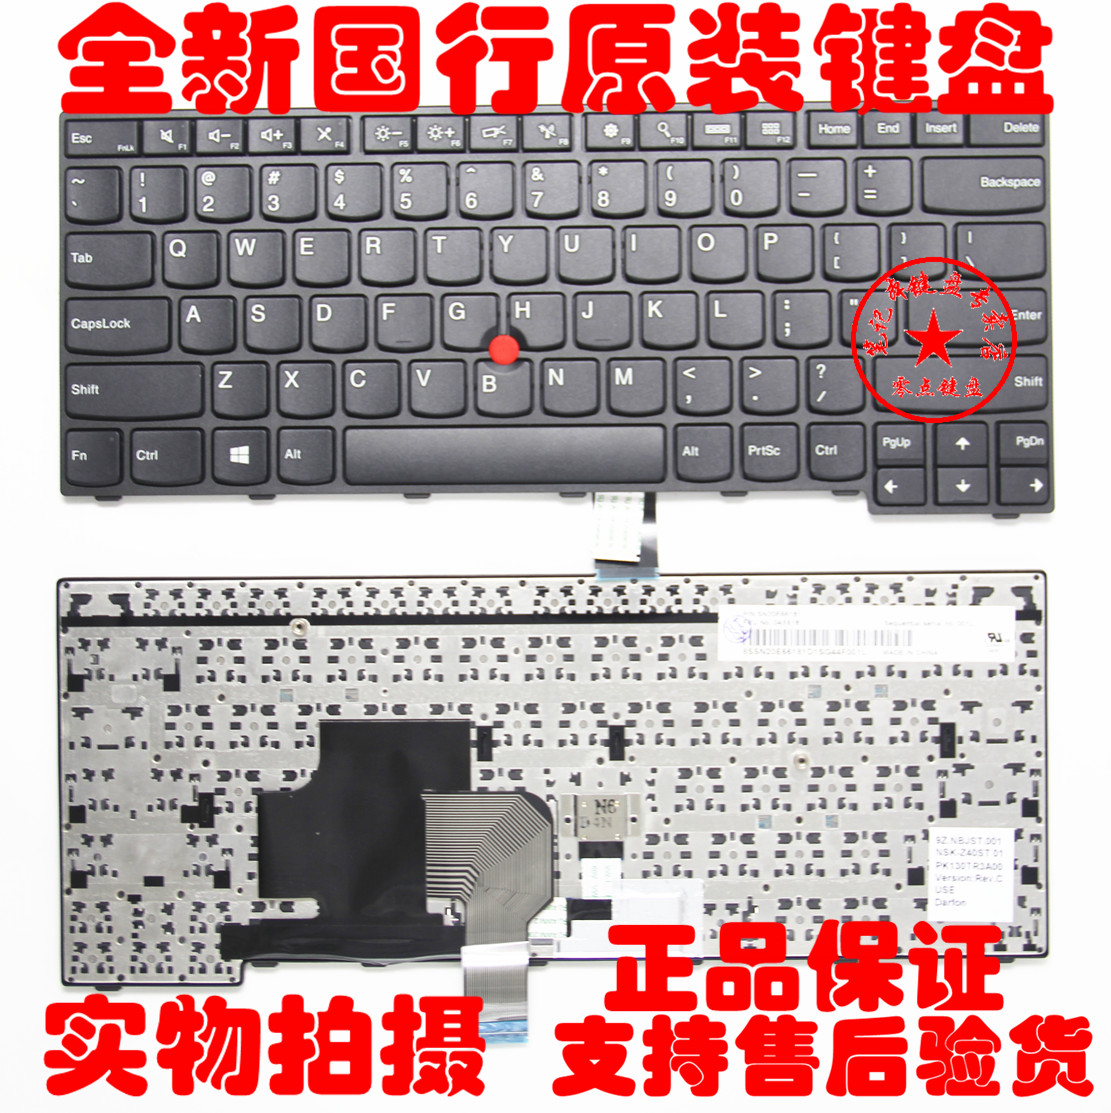 NEW Replace FOR <font><b>LENOVO</b></font> IBM Thinkpad E450 E455 E450C W450 <font><b>E460</b></font> E465 laptop Built-in <font><b>keyboard</b></font> image